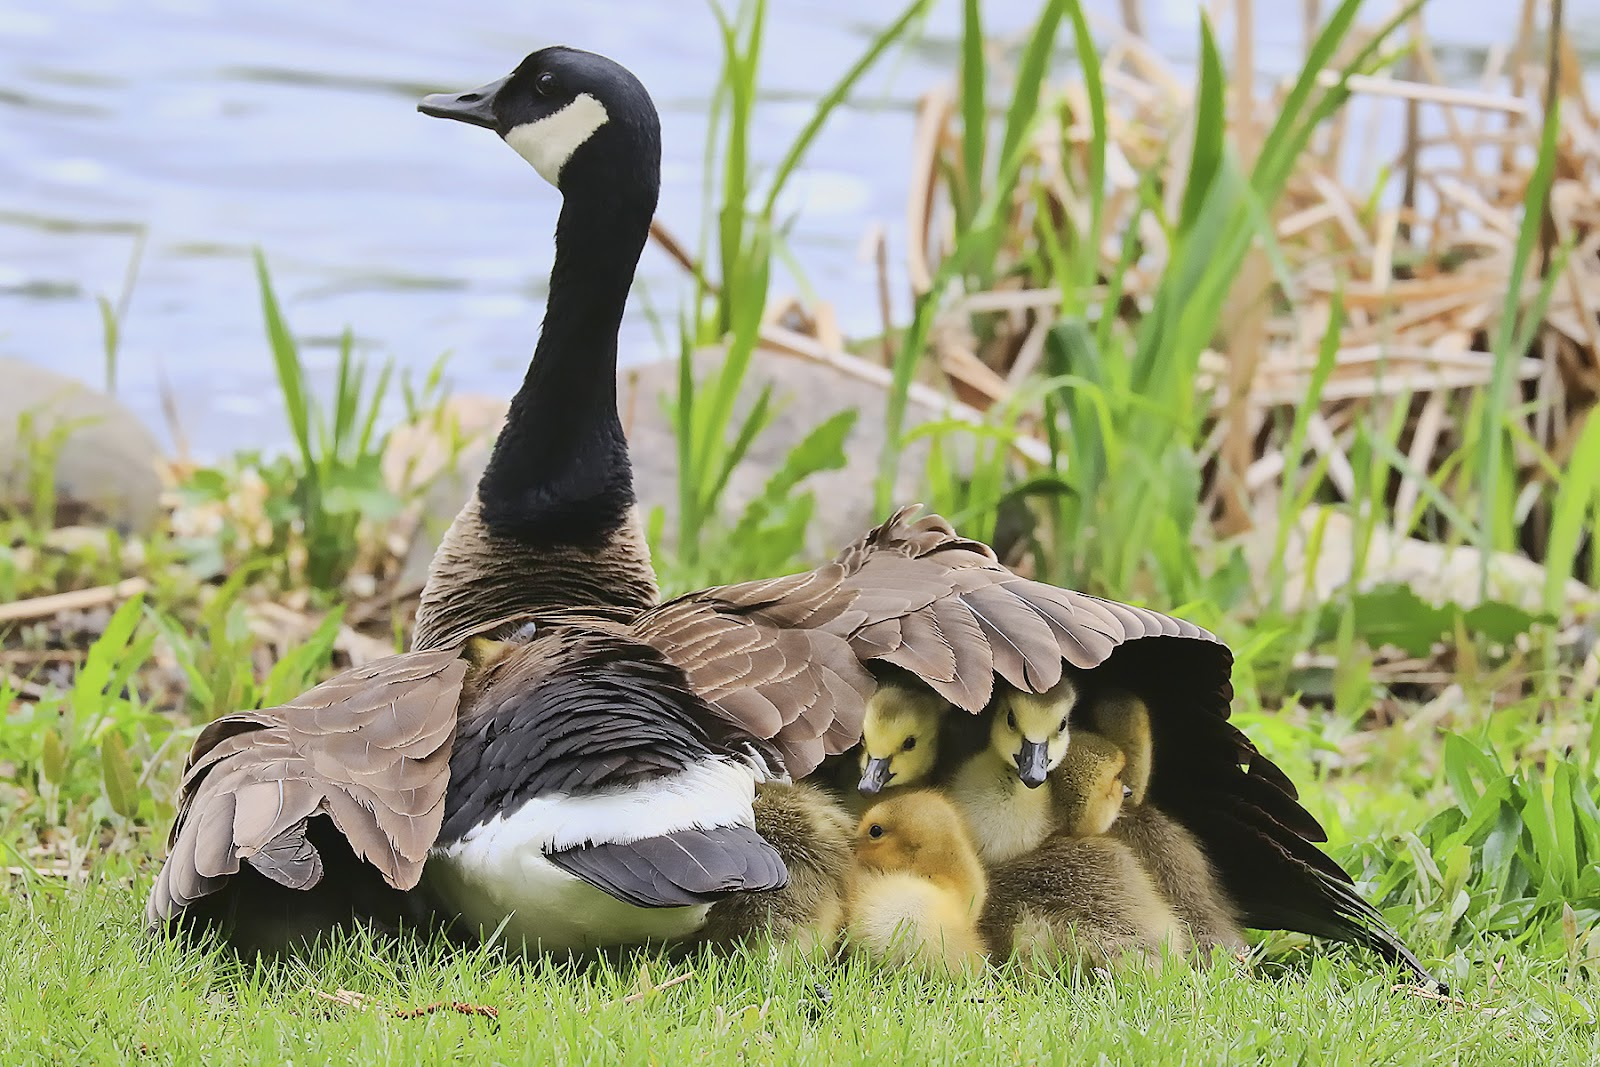 A Canada Goose shelters her goslings with one wing.